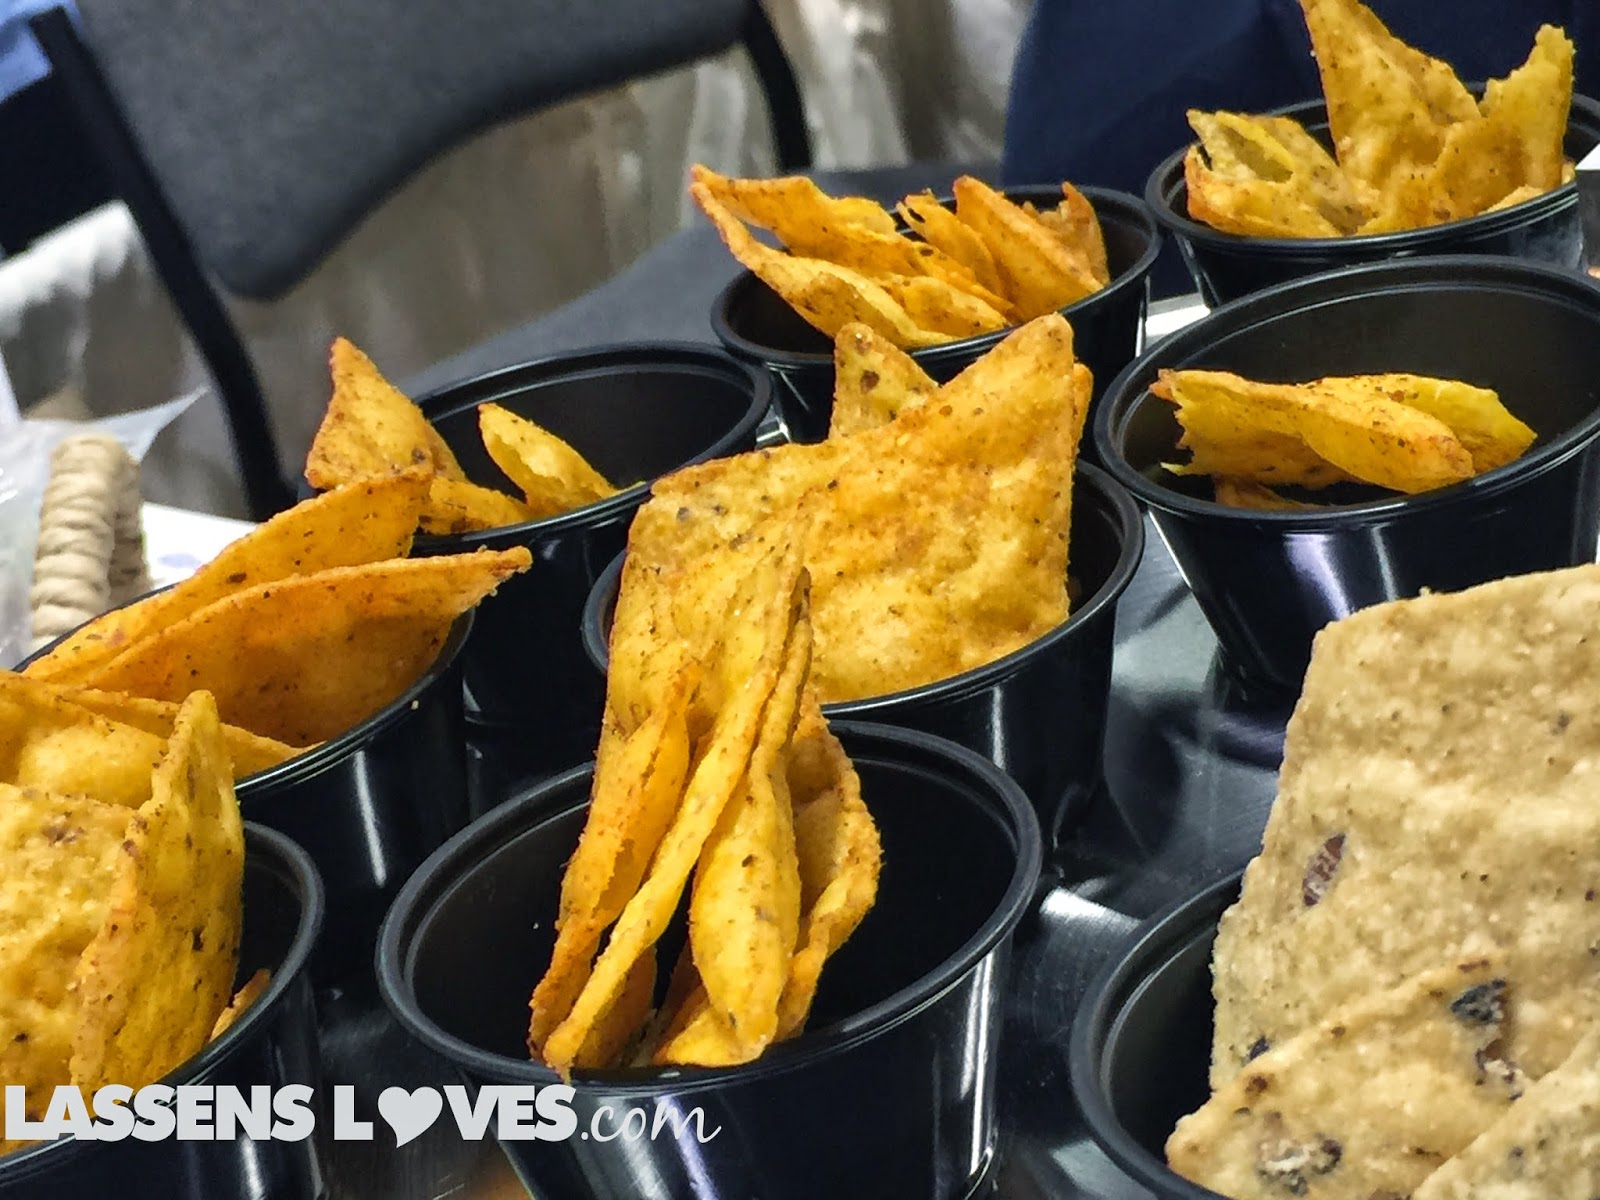 Expo+West+2015, Natural+Foods+Show, New+Natural+Products, tortilla+chips